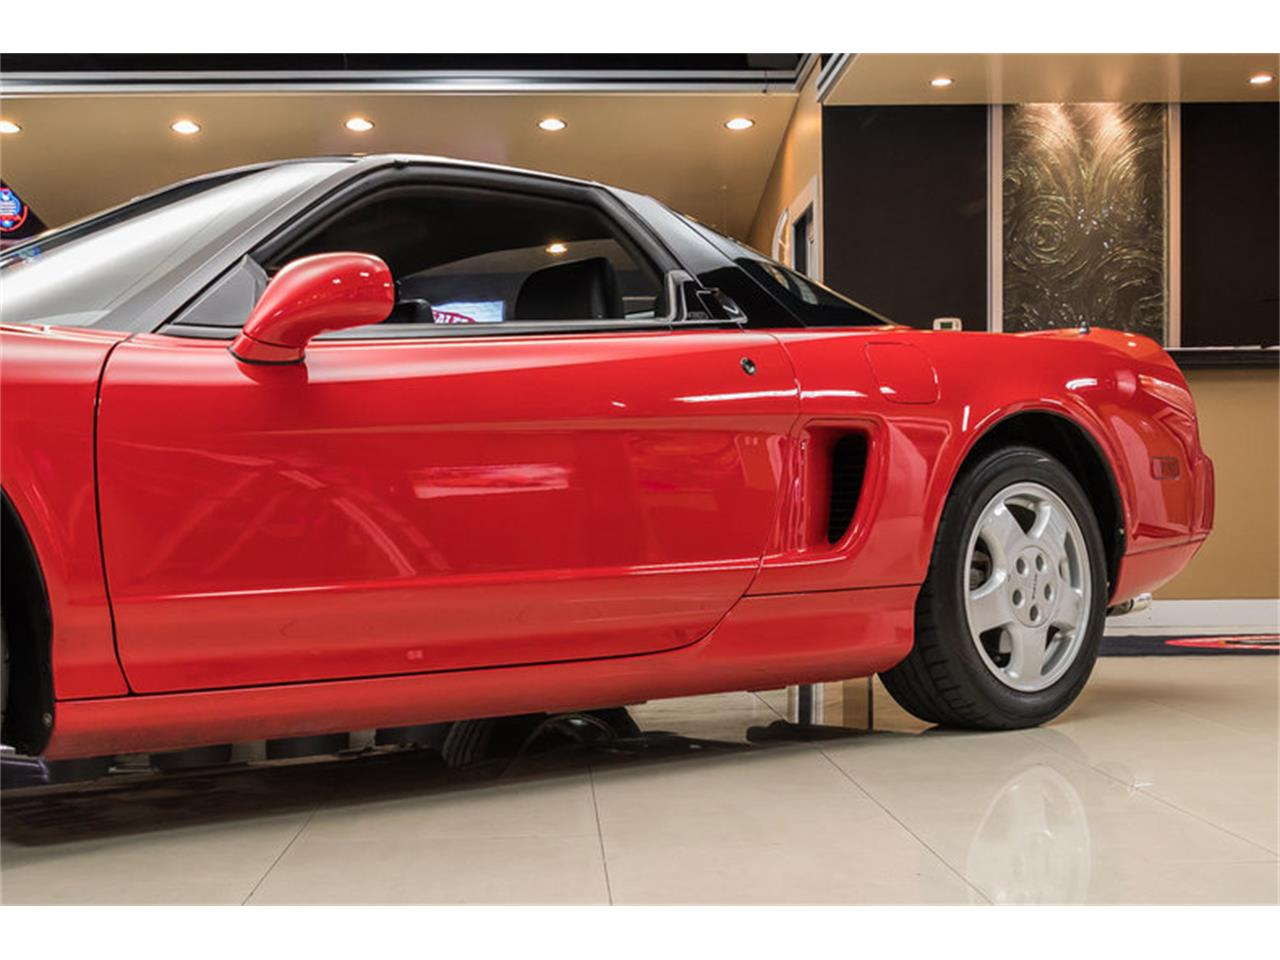 Large Picture of '92 Acura NSX - $69,900.00 Offered by Vanguard Motor Sales - MZ8C